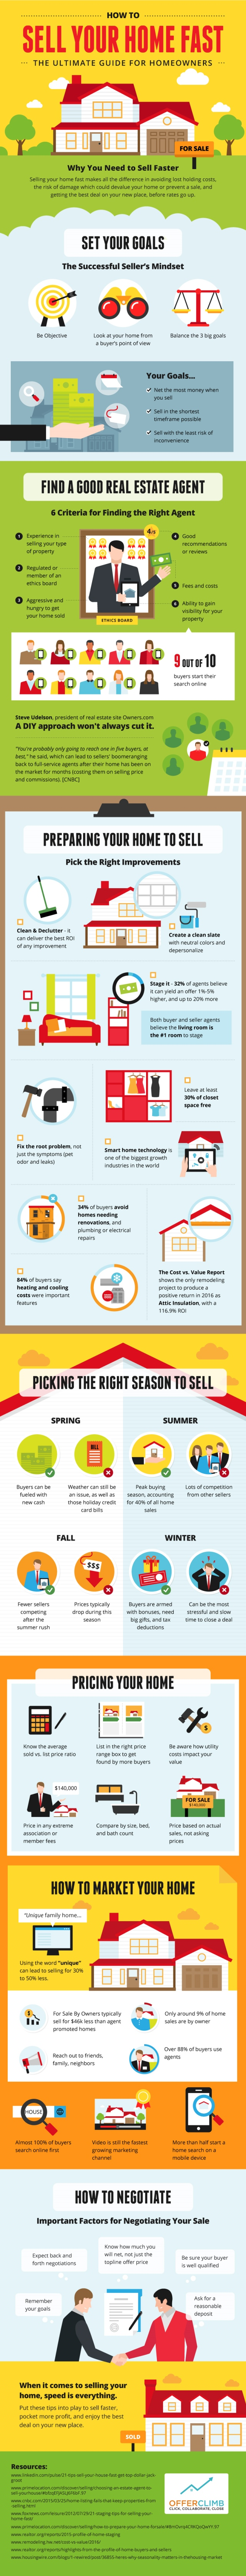 Infographic Guide to sell your home fast